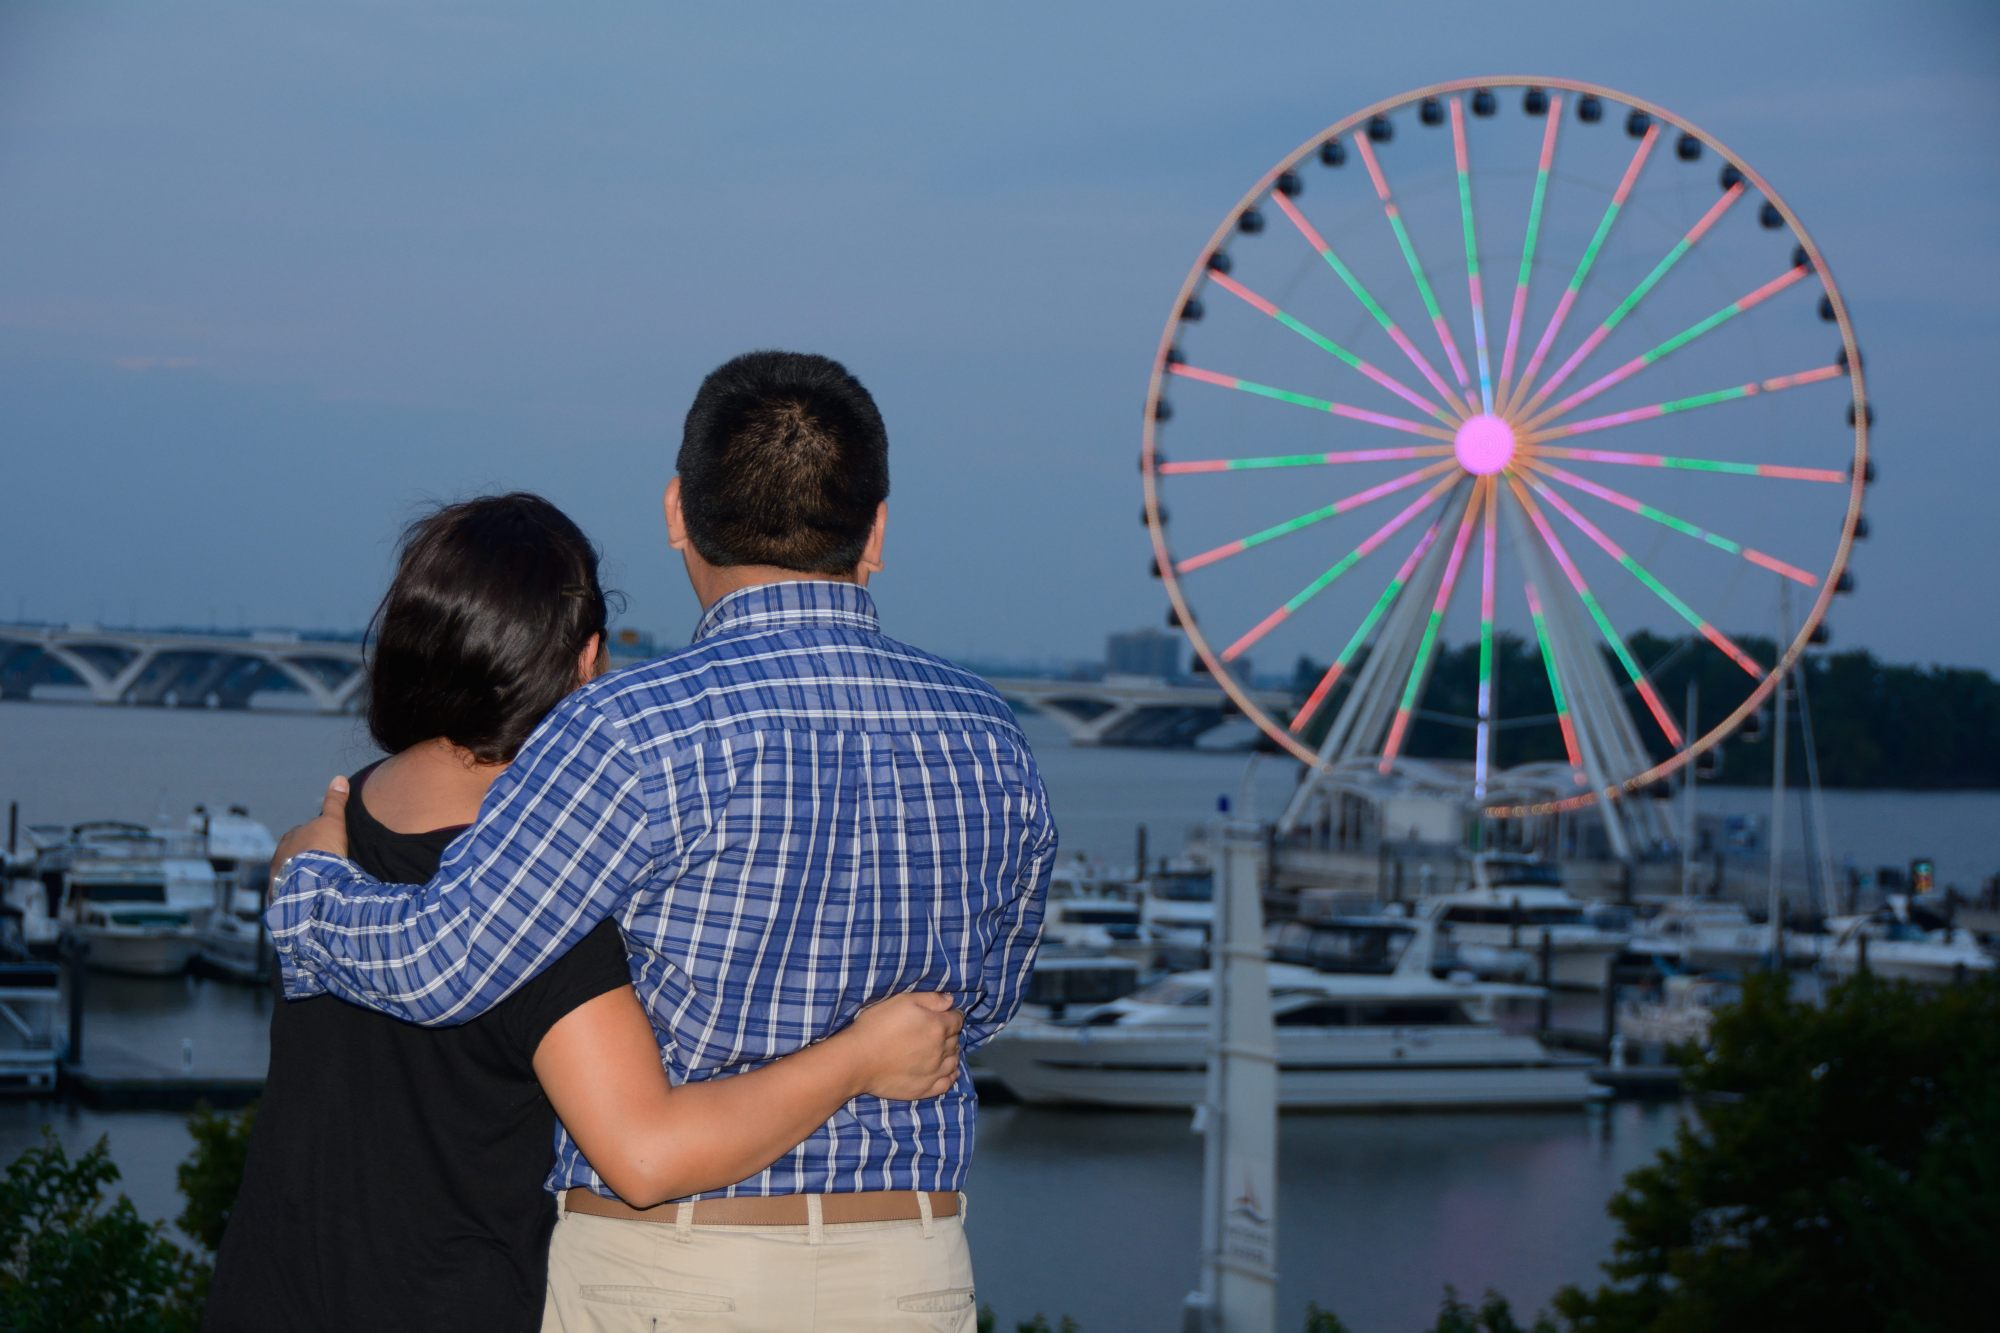 tomas hric photography stunning family and engagement photographer couple looking at ferris wheel